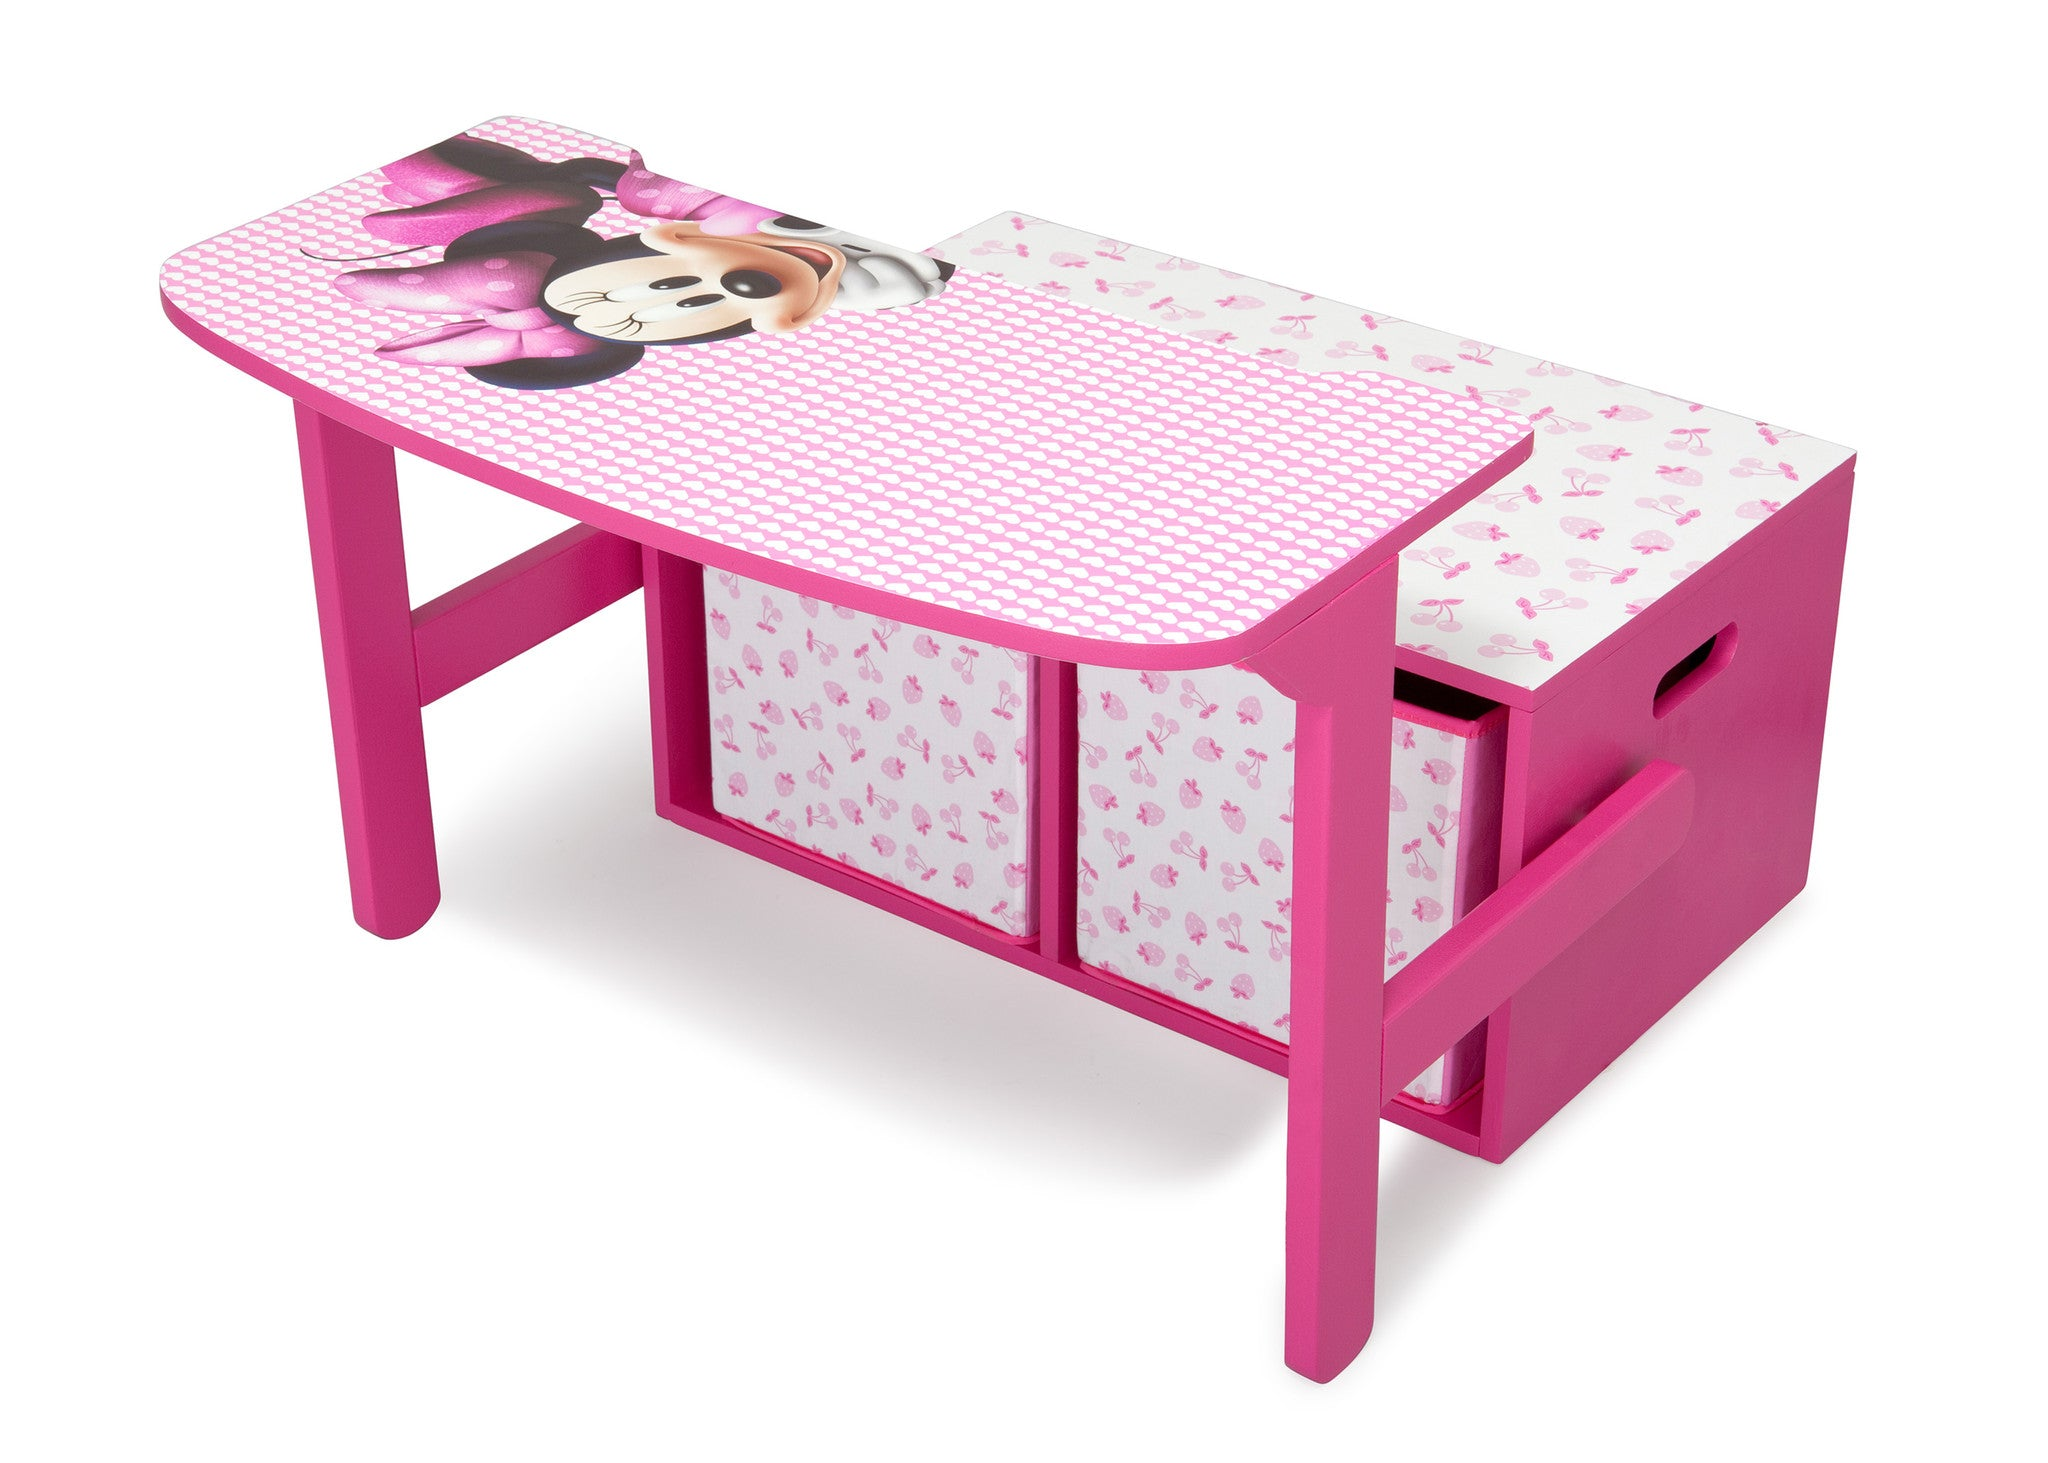 Minnie Mouse 3 In 1 Storage Bench And Desk Delta